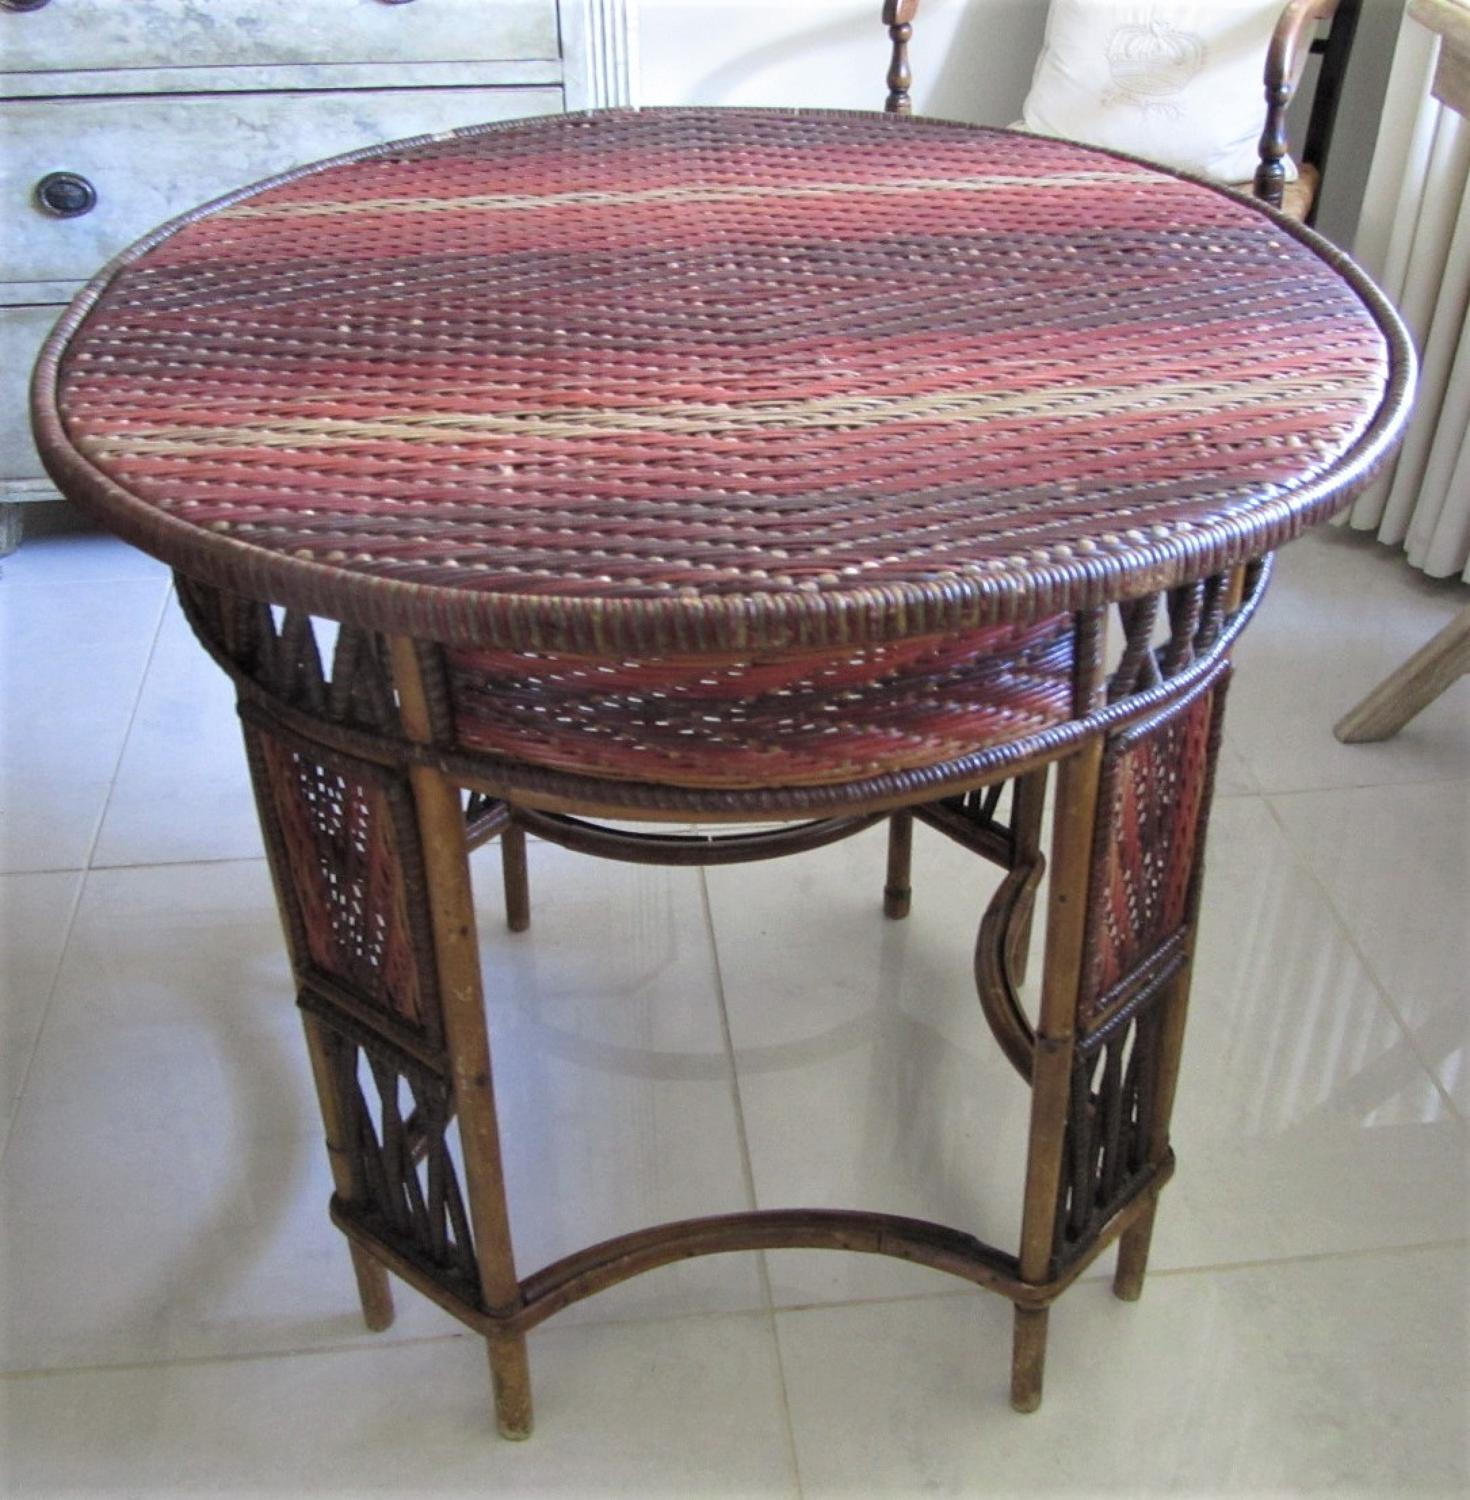 Rattan conservatory table